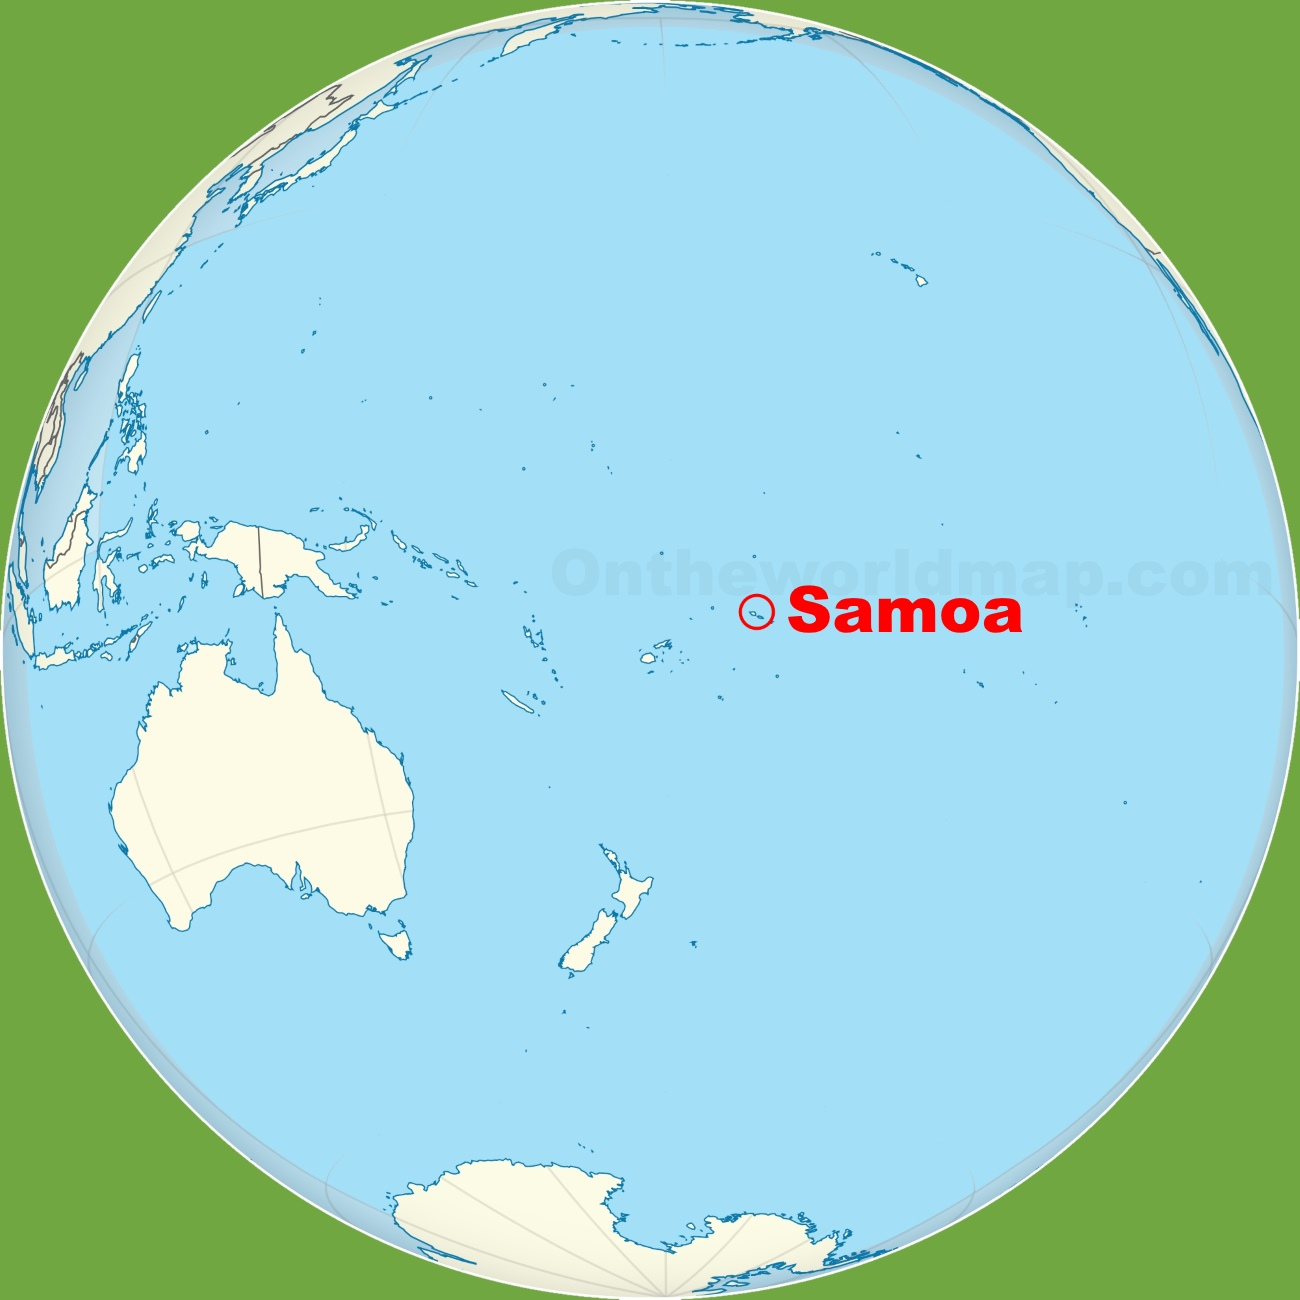 Samoa location on the Pacific Ocean map